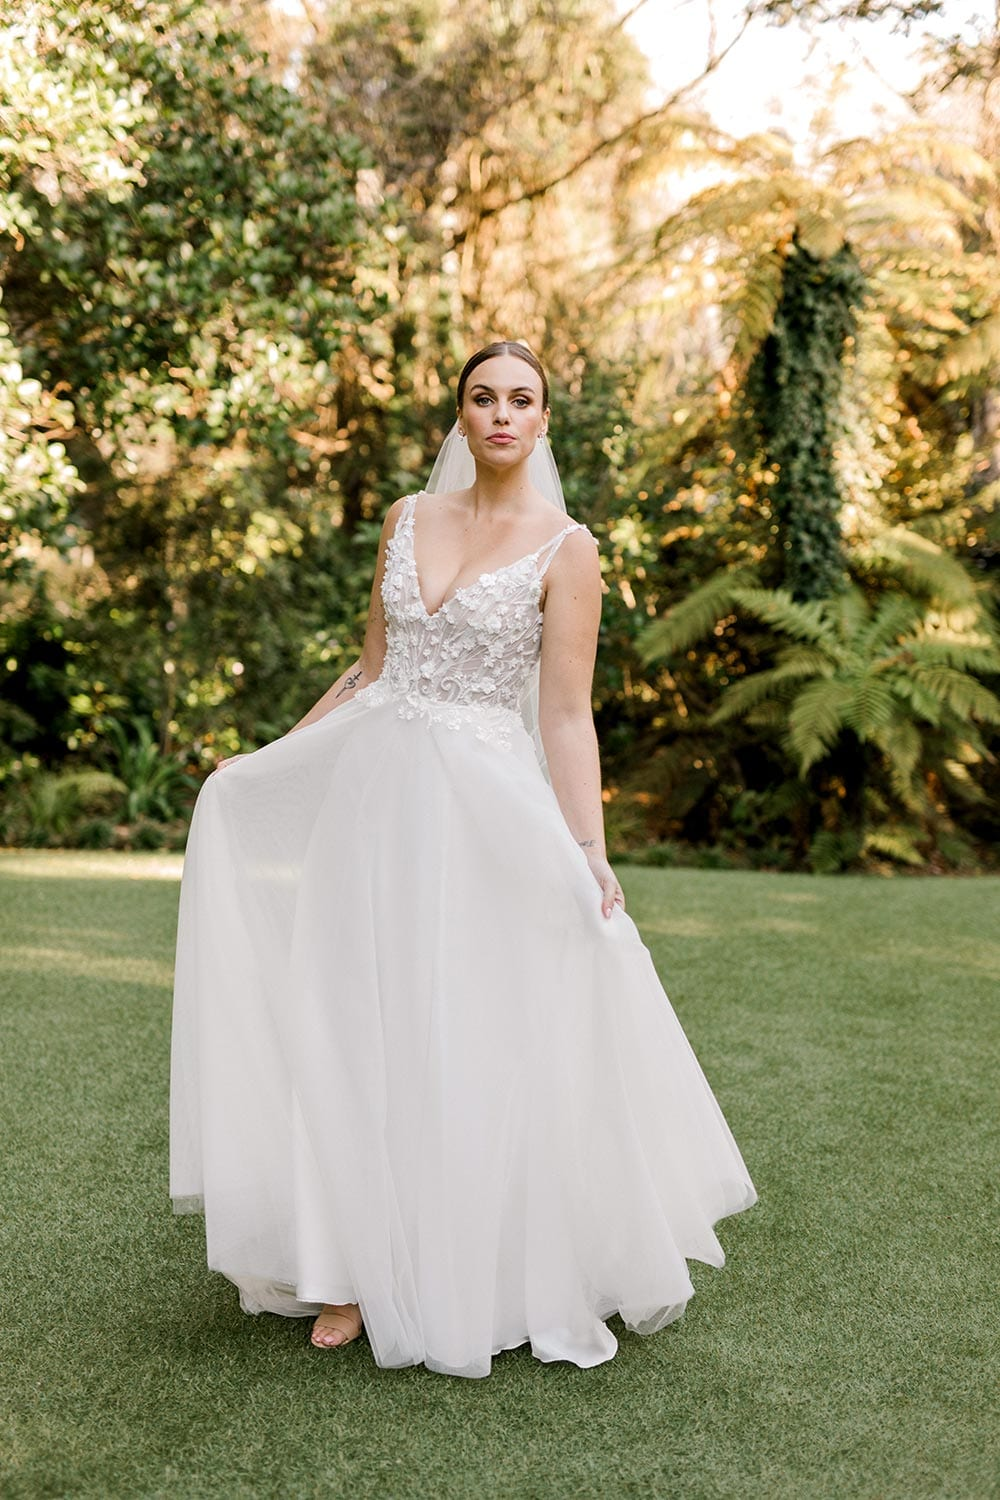 Serena Wedding Gown from Vinka Design - Classic & feminine wedding gown. Deep V-neckline semi-sheer structured bodice appliqued with flowers & leaves. Dreamy layered soft tulle skirt with side-split. Full view with skirt being held out. Photograph in landscaped gardens.